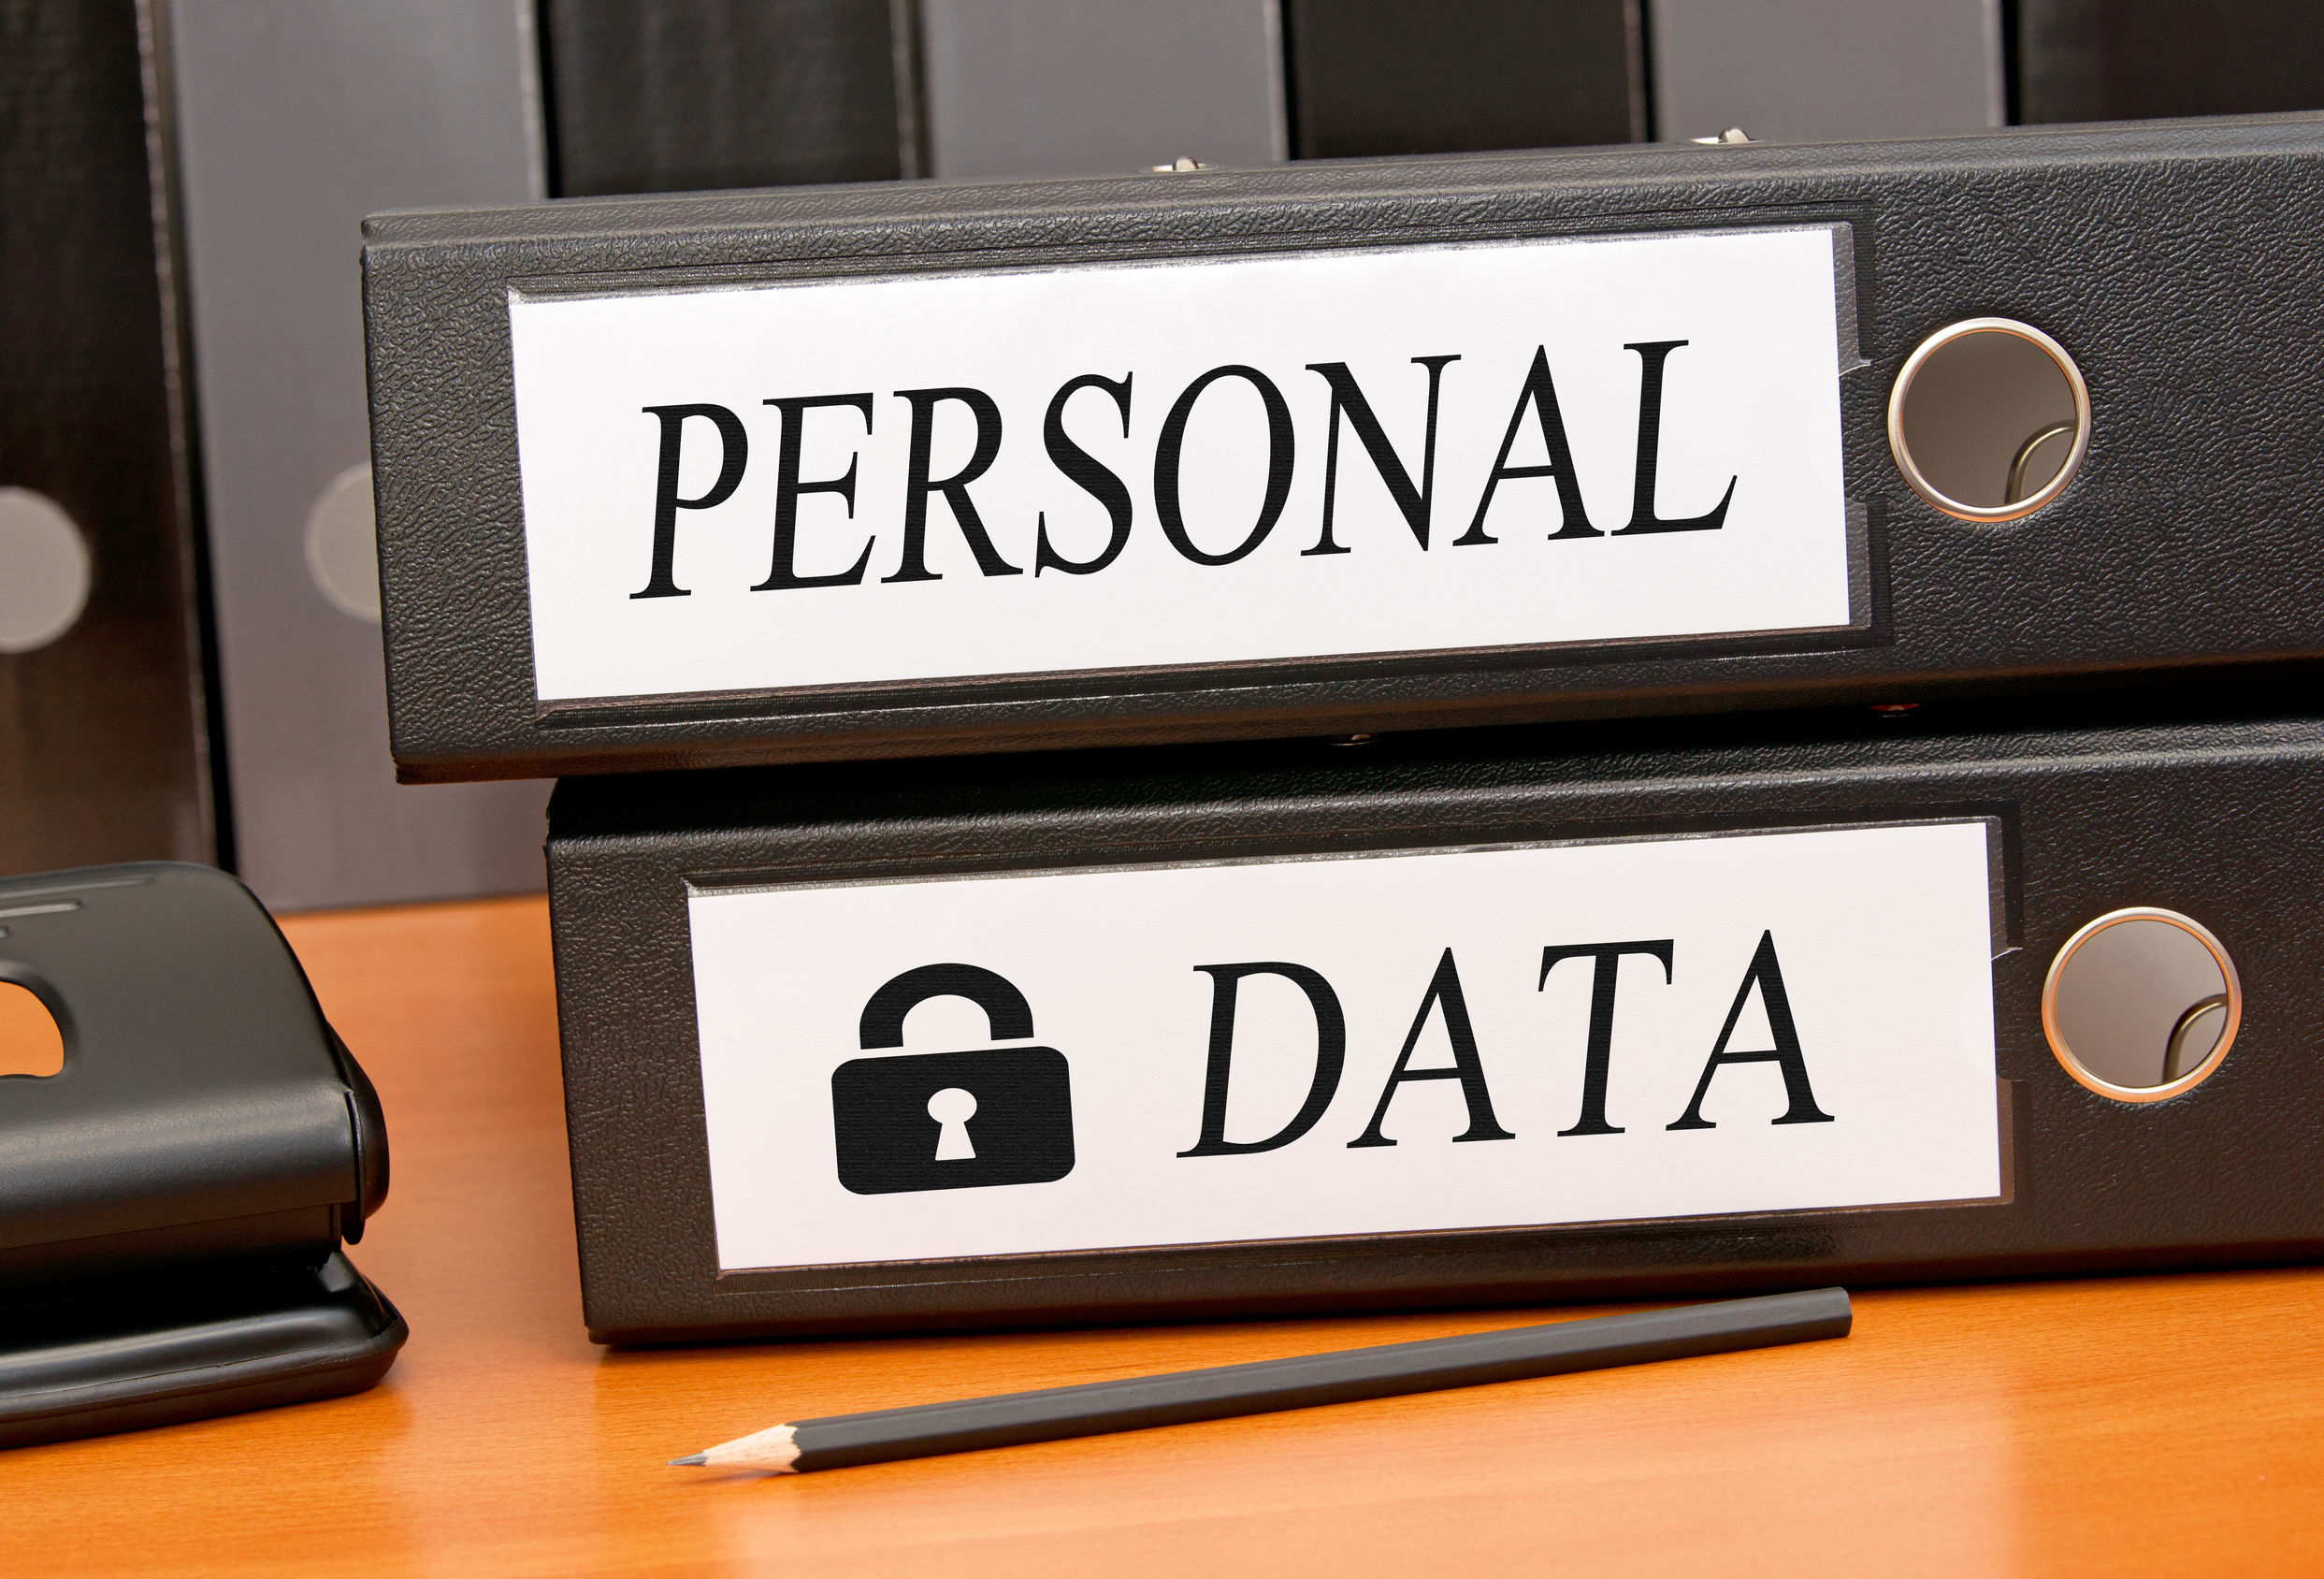 ZETLAB Company - personal data protection and use